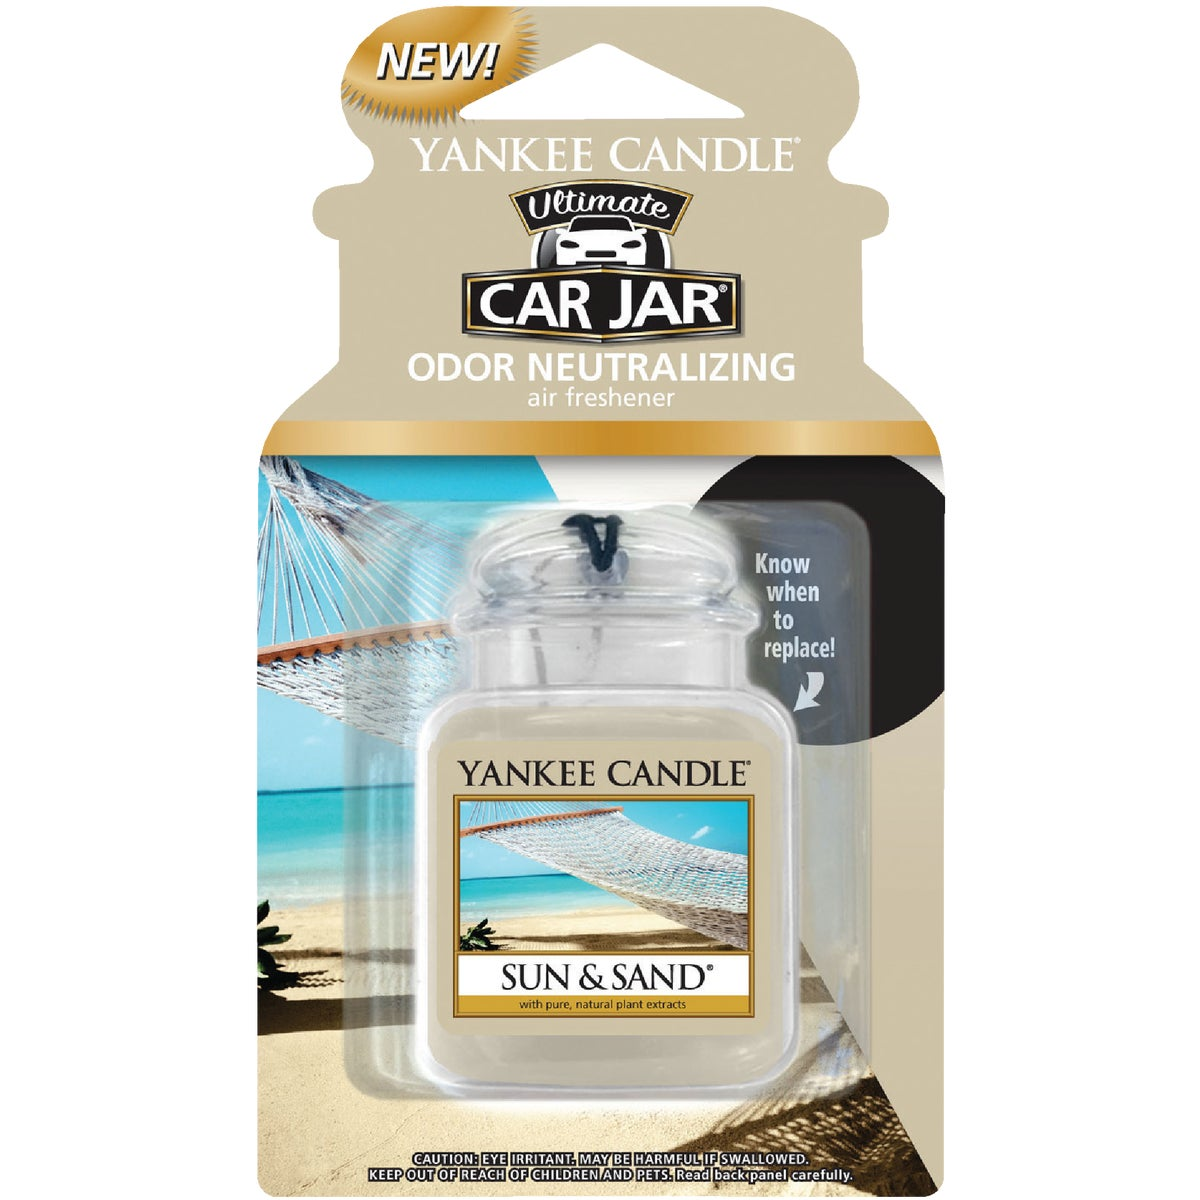 SUN & SAND CAR FRESHENER - 1220890 by Yankee Candle Co